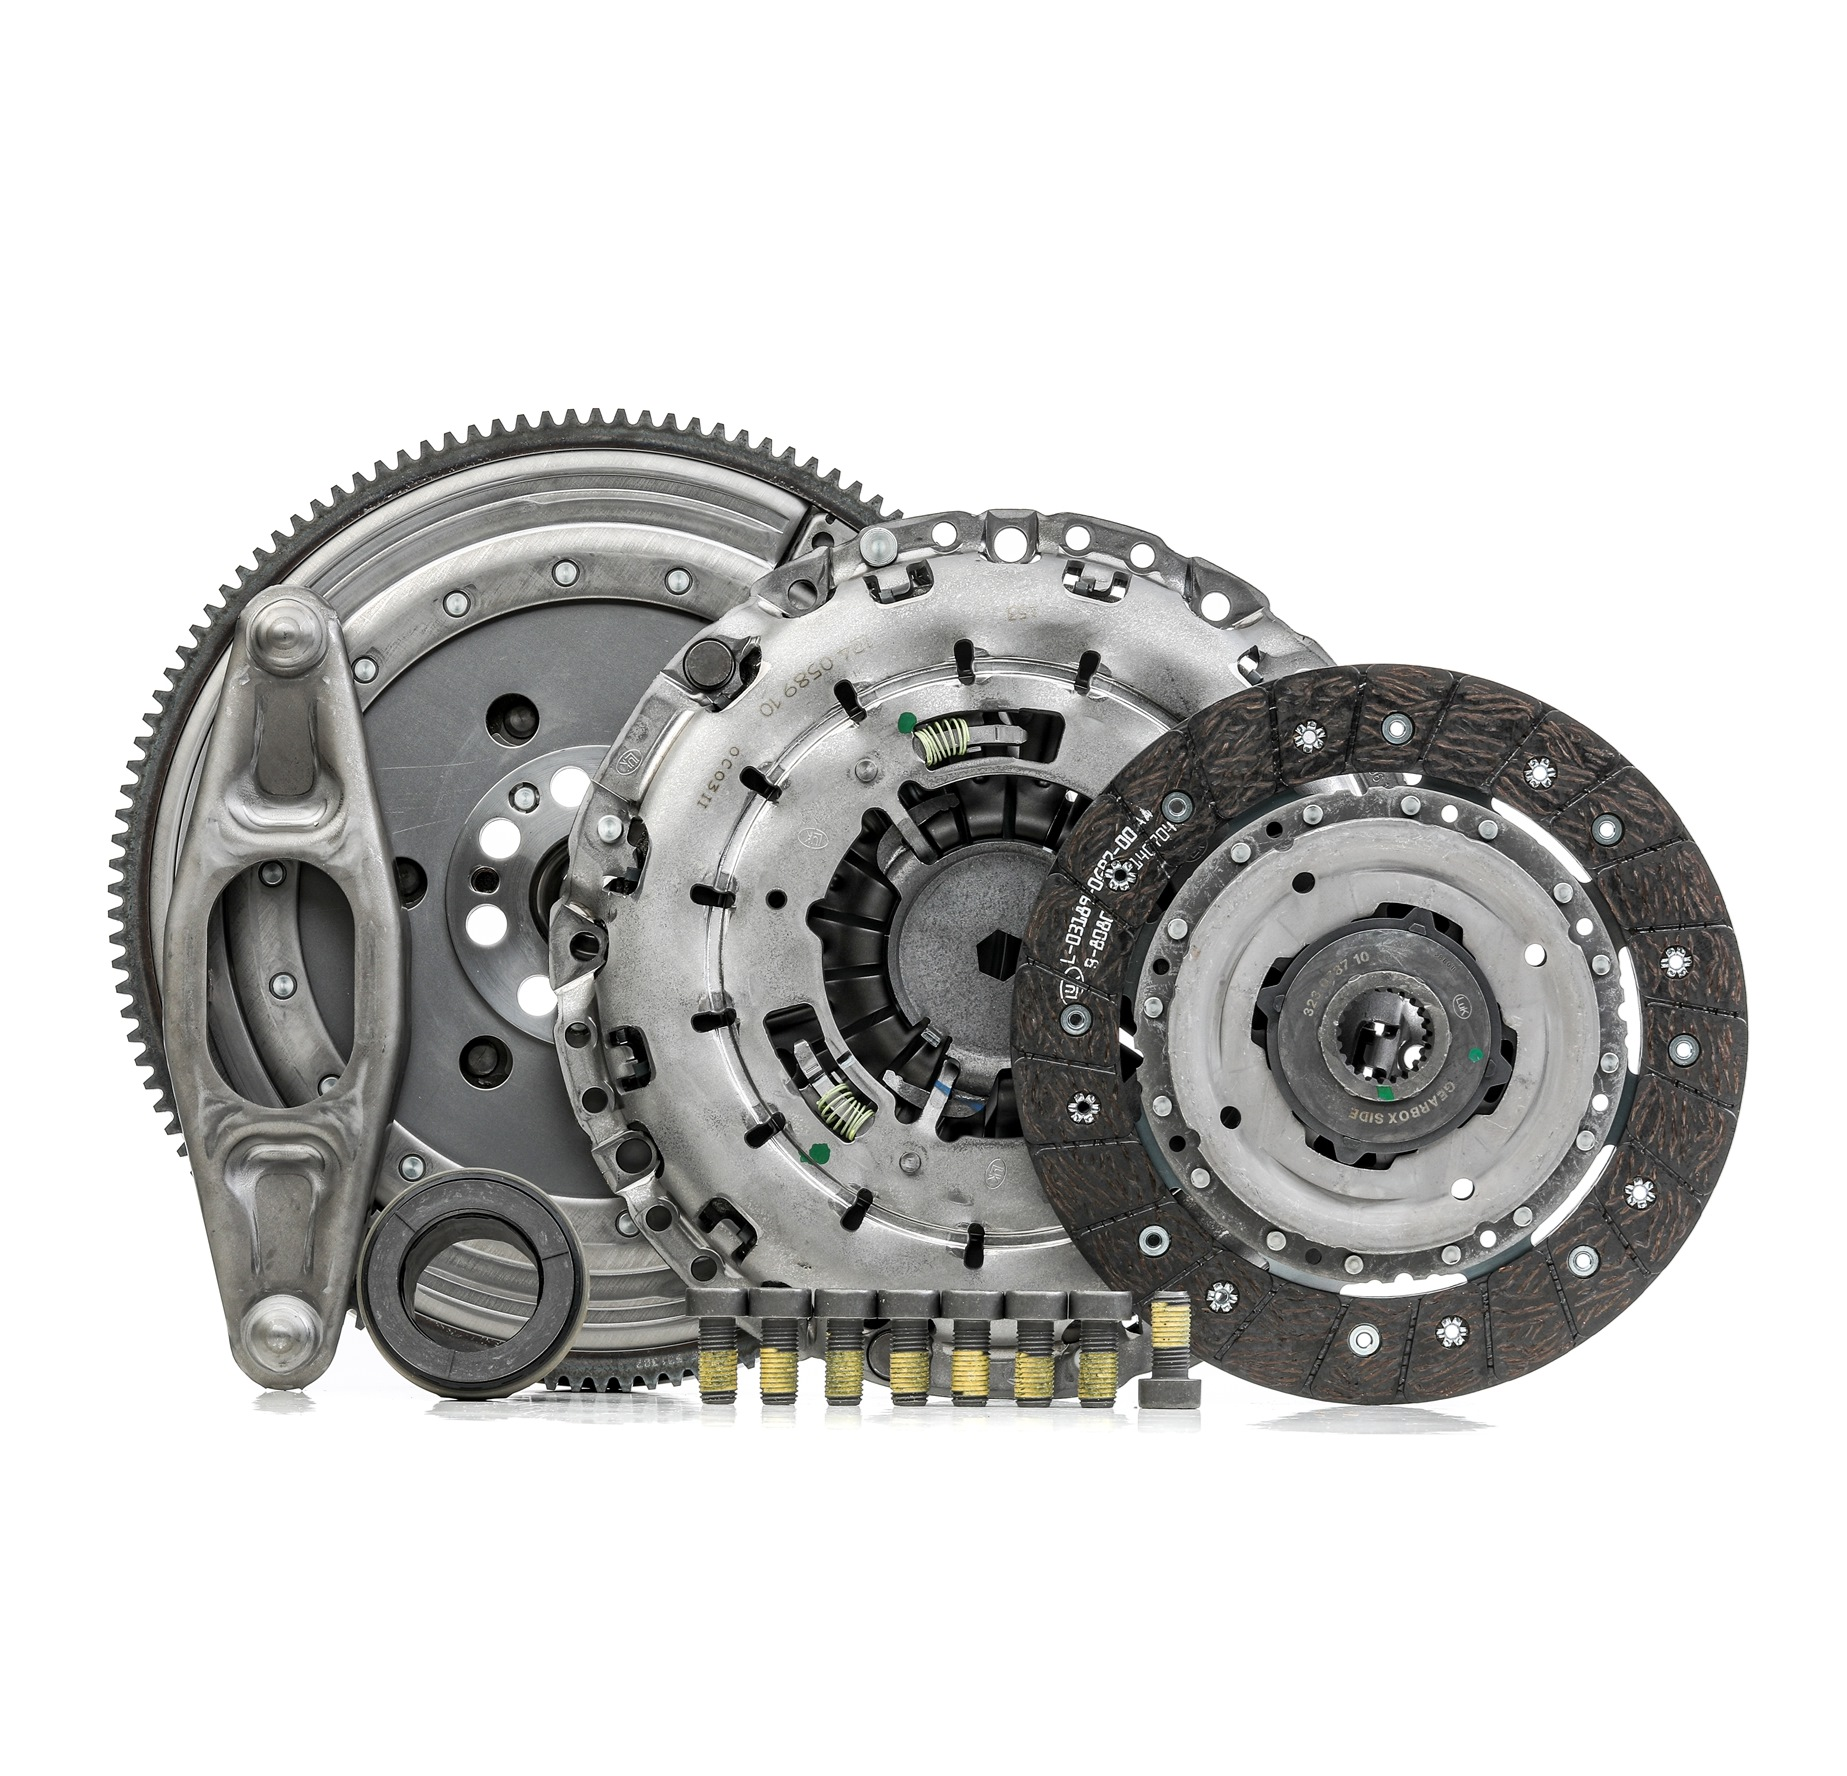 BMW 1 Series 2015 Clutch set LuK 600 0296 00: with pilot bearing, Dual-mass flywheel without friction control plate, with clutch release bearing, with flywheel, with screw set